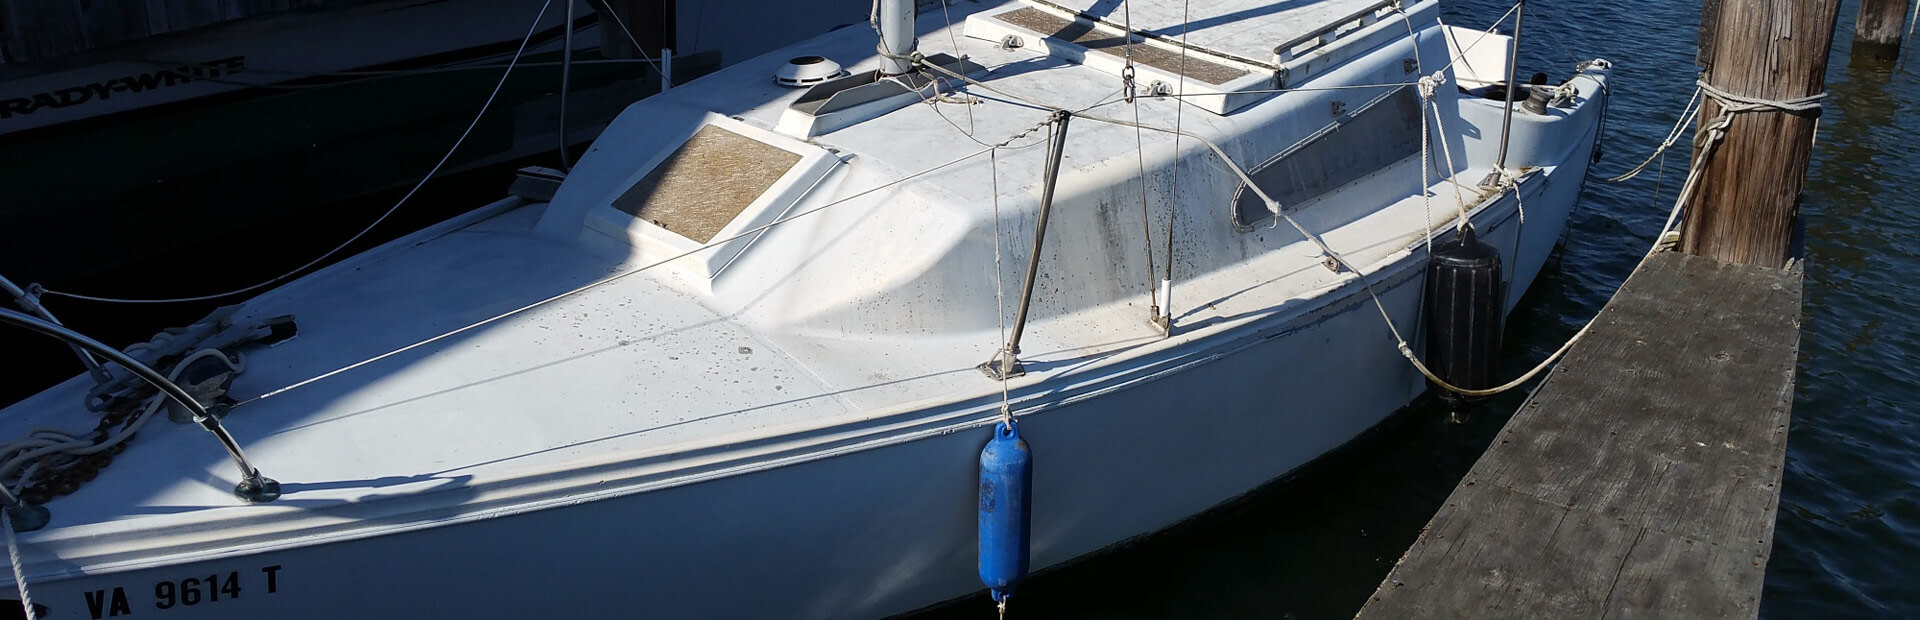 Donate Boat, Yacht or Jet Ski in Kentucky - Sailboat Donations Too!